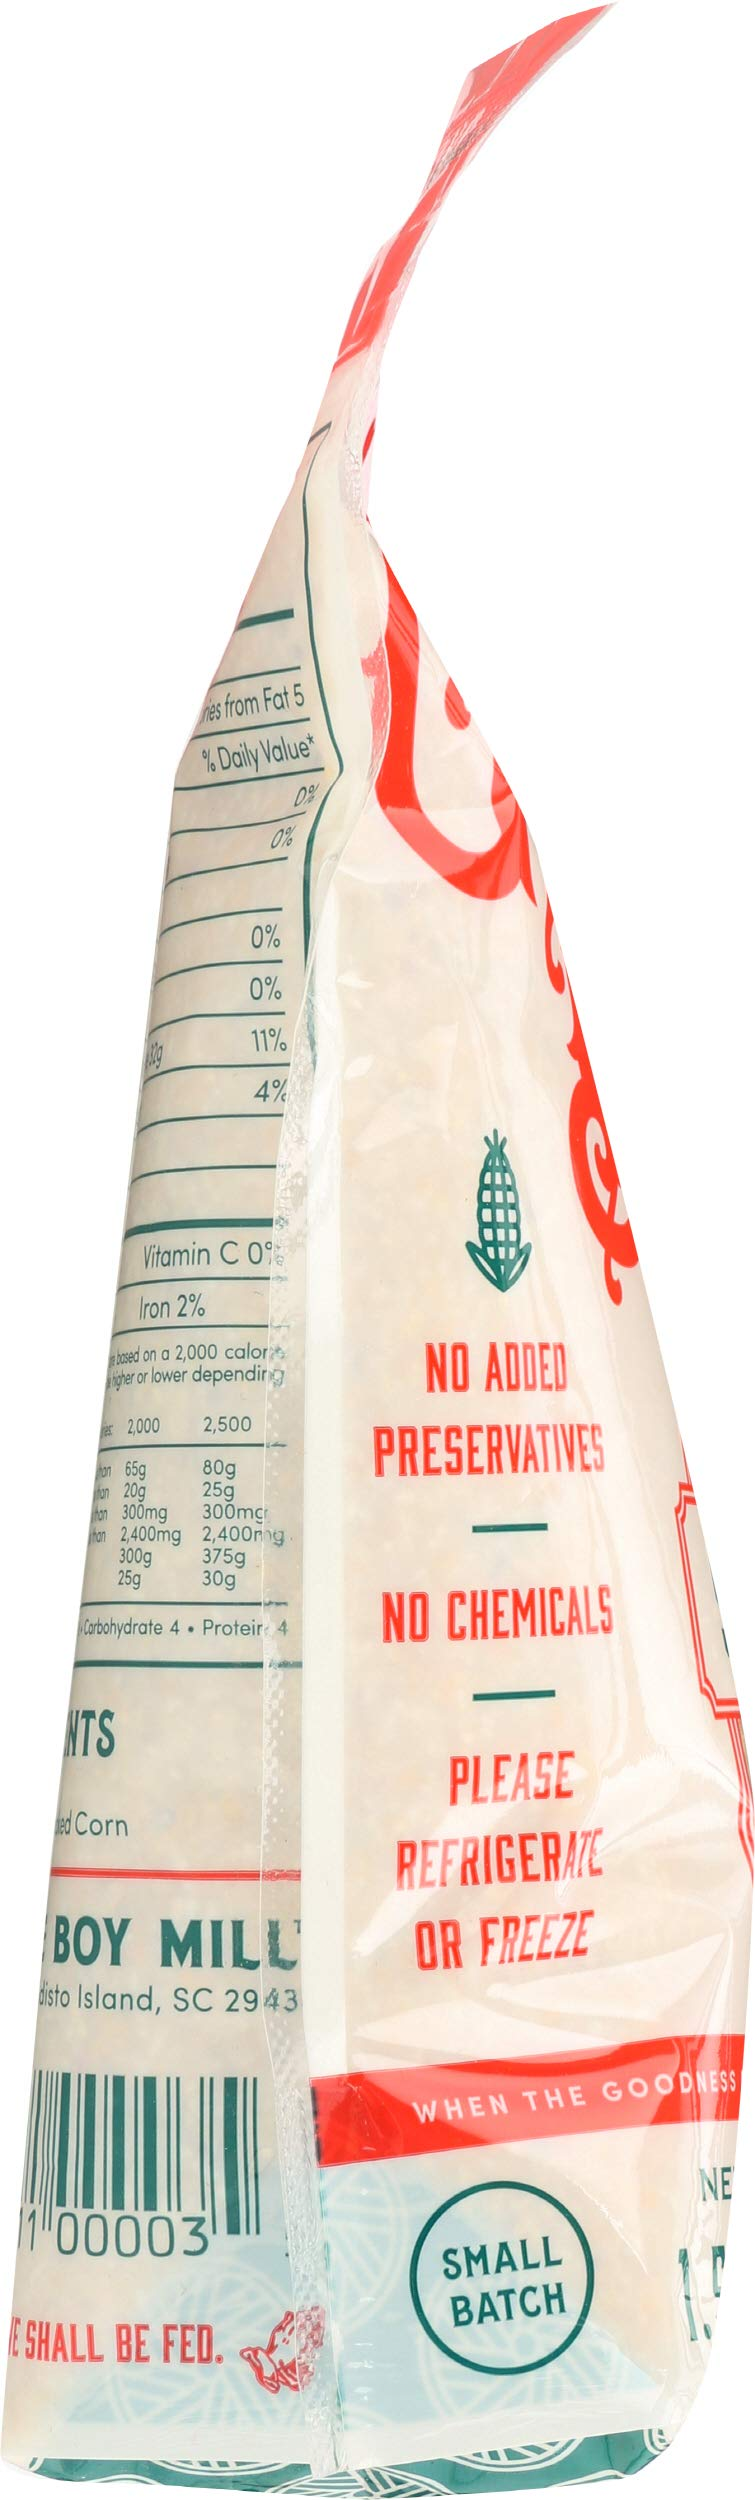 Geechie Boy Mill Speckled Grits, 24 Ounce Bag